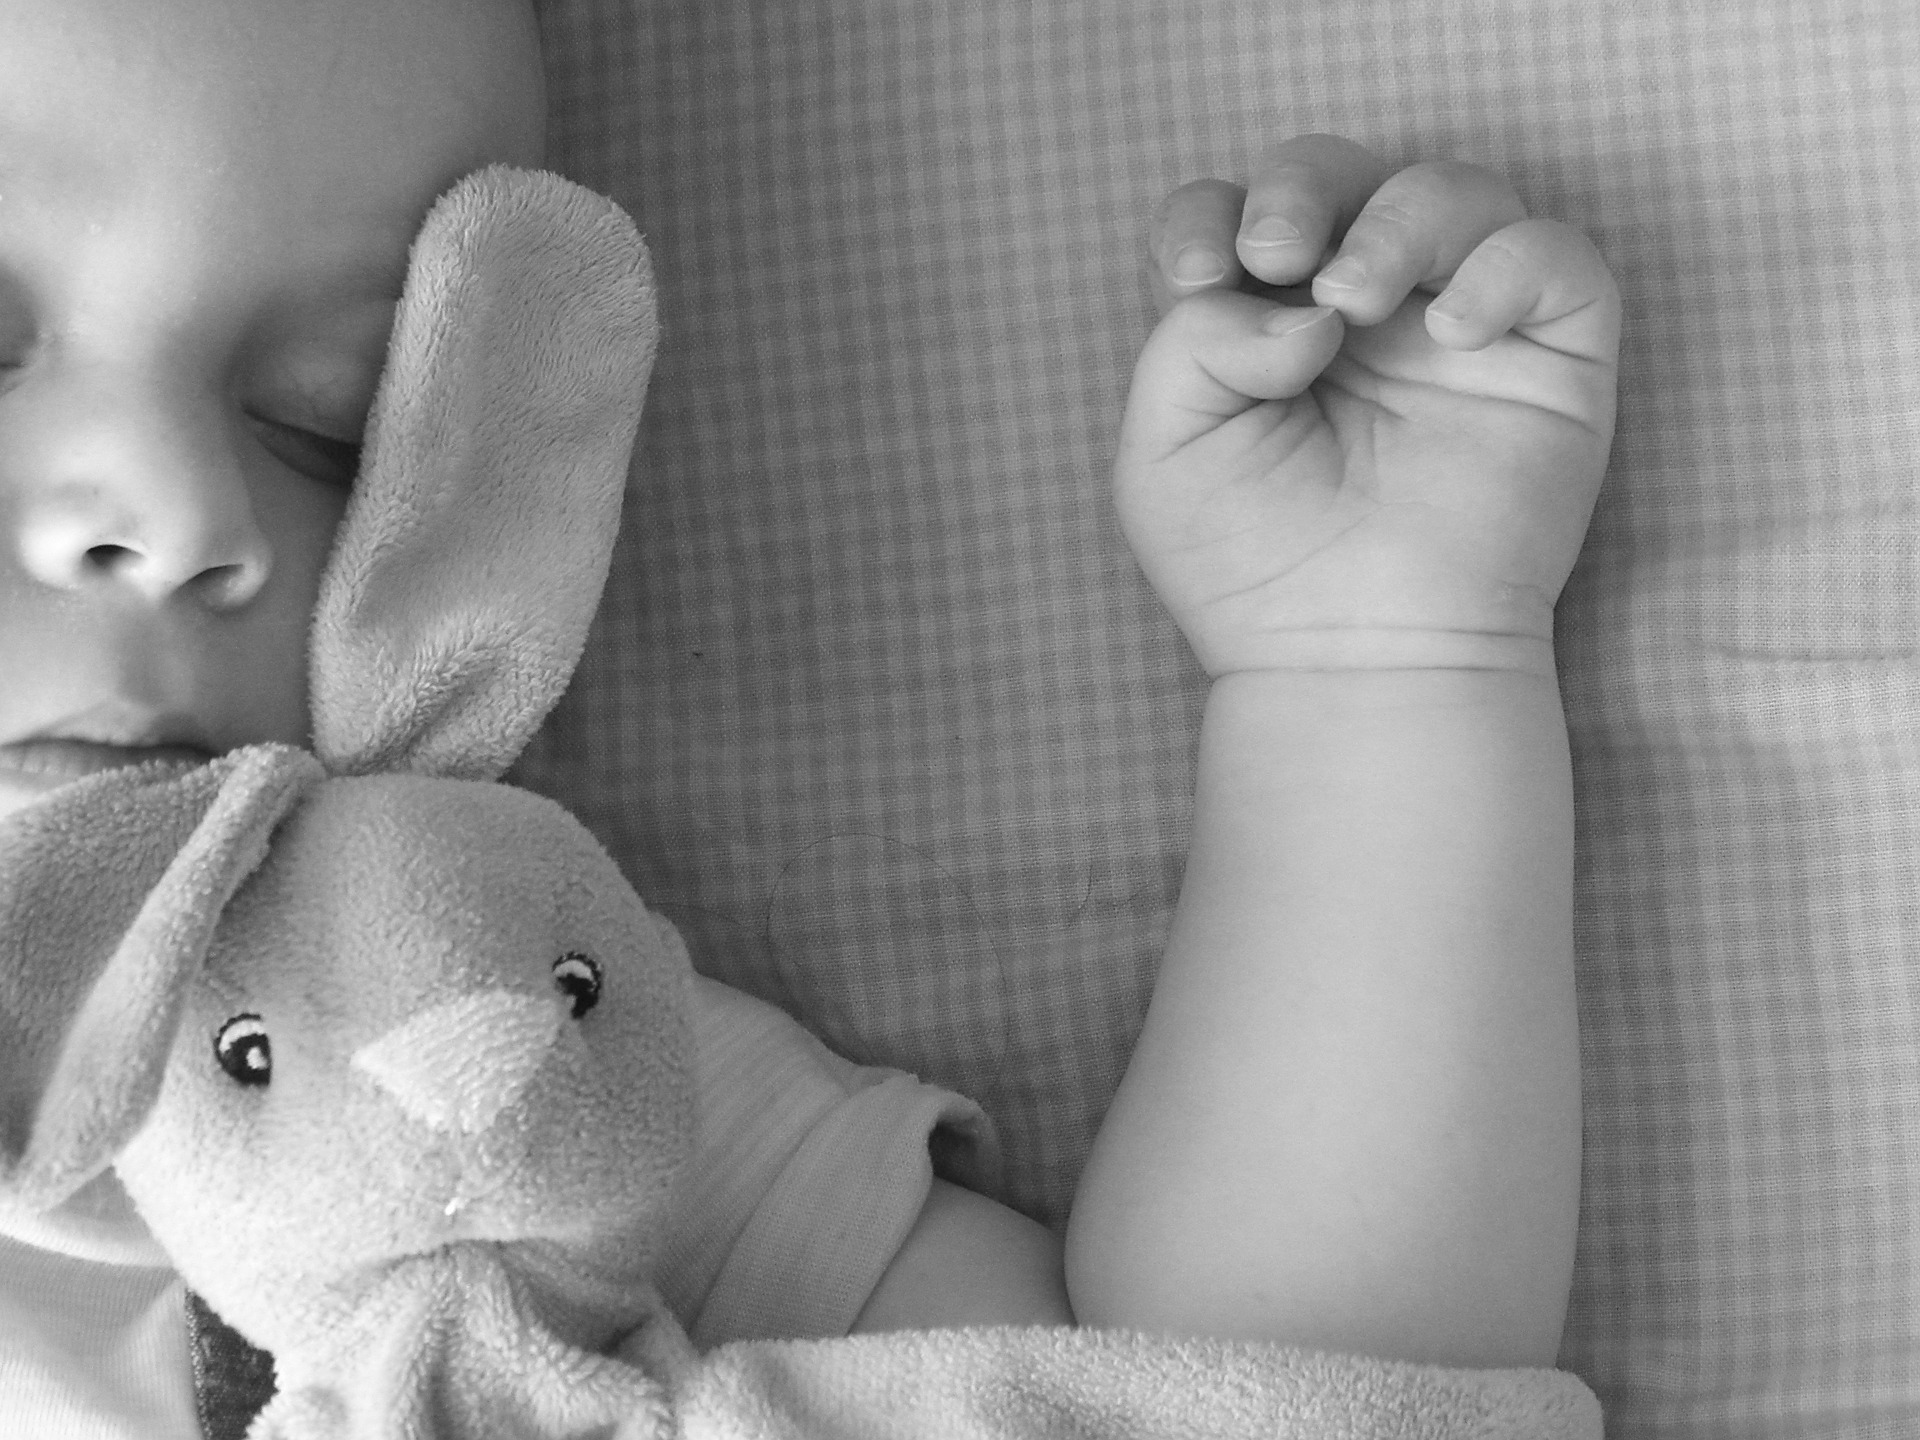 baby asleep in black and white image